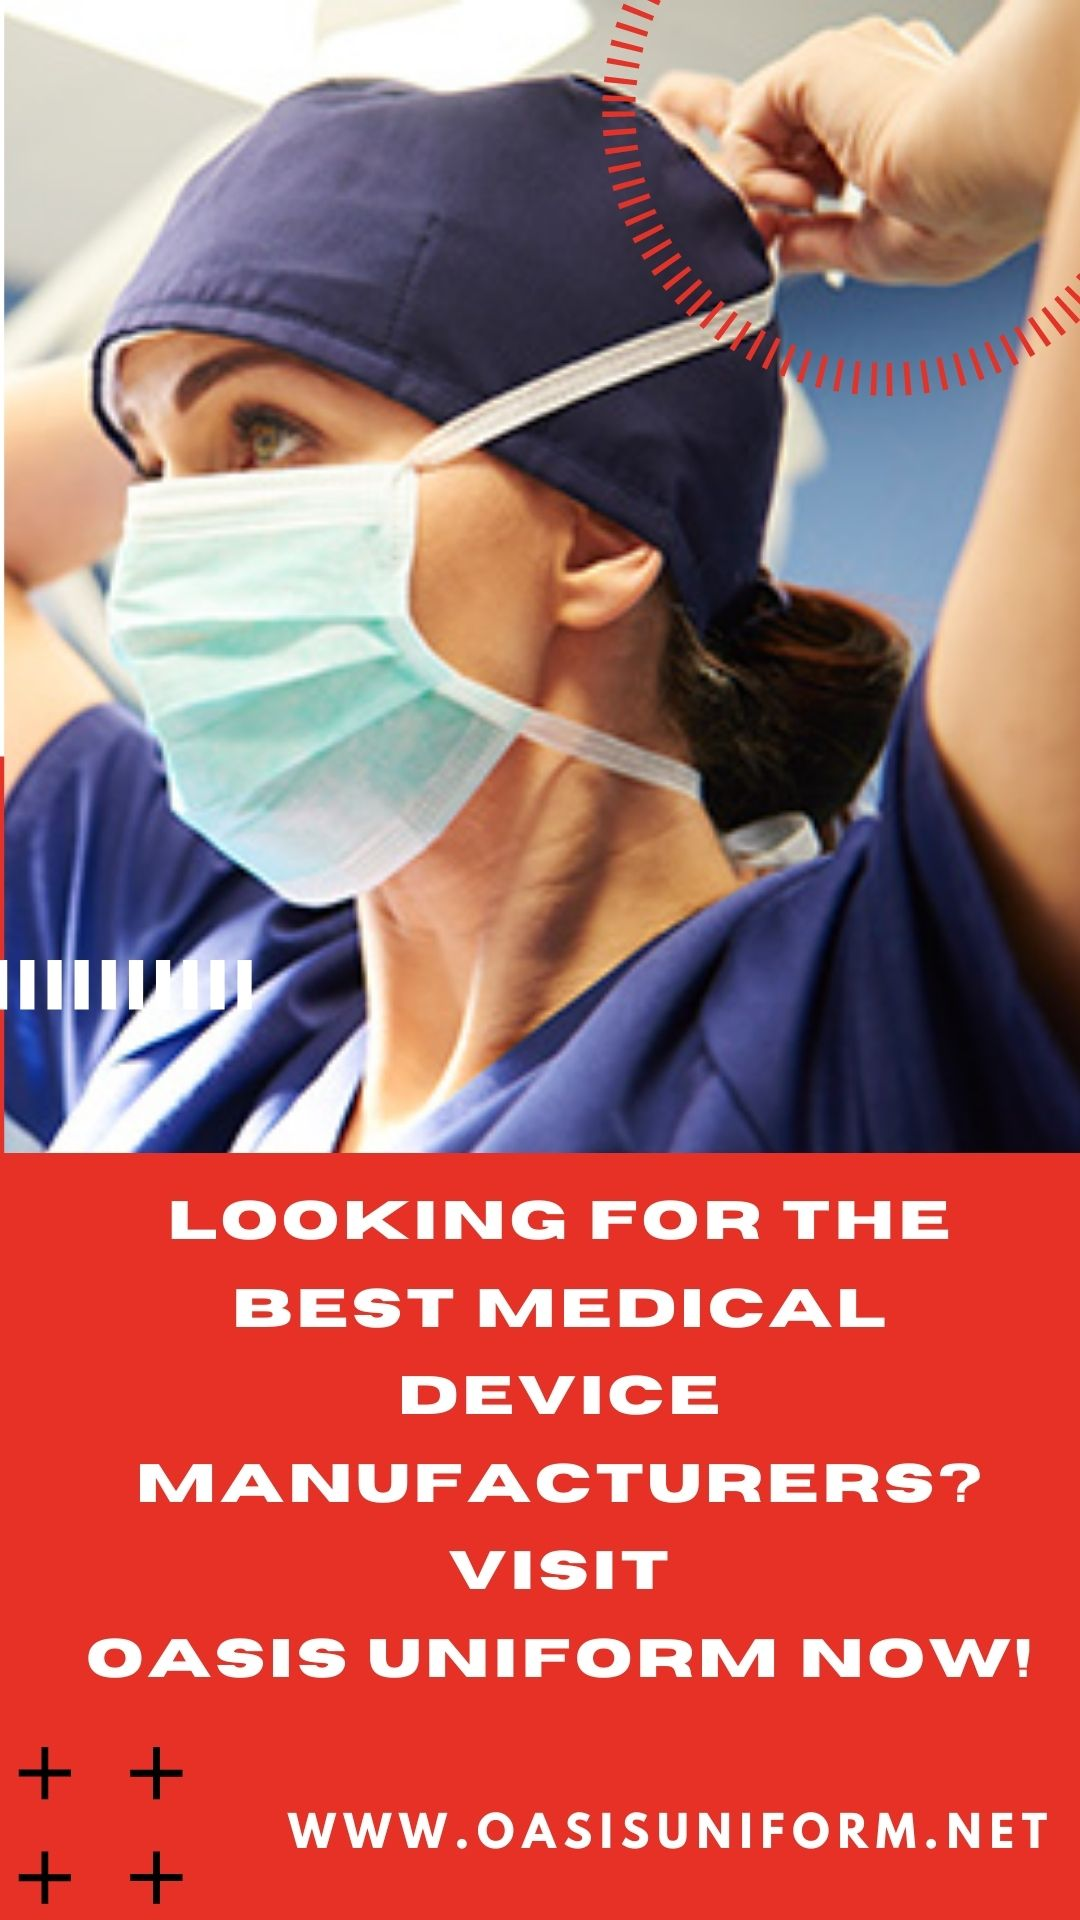 Looking For The Best Medical Device Manufacturers? Visit Oasis Uniform Now!